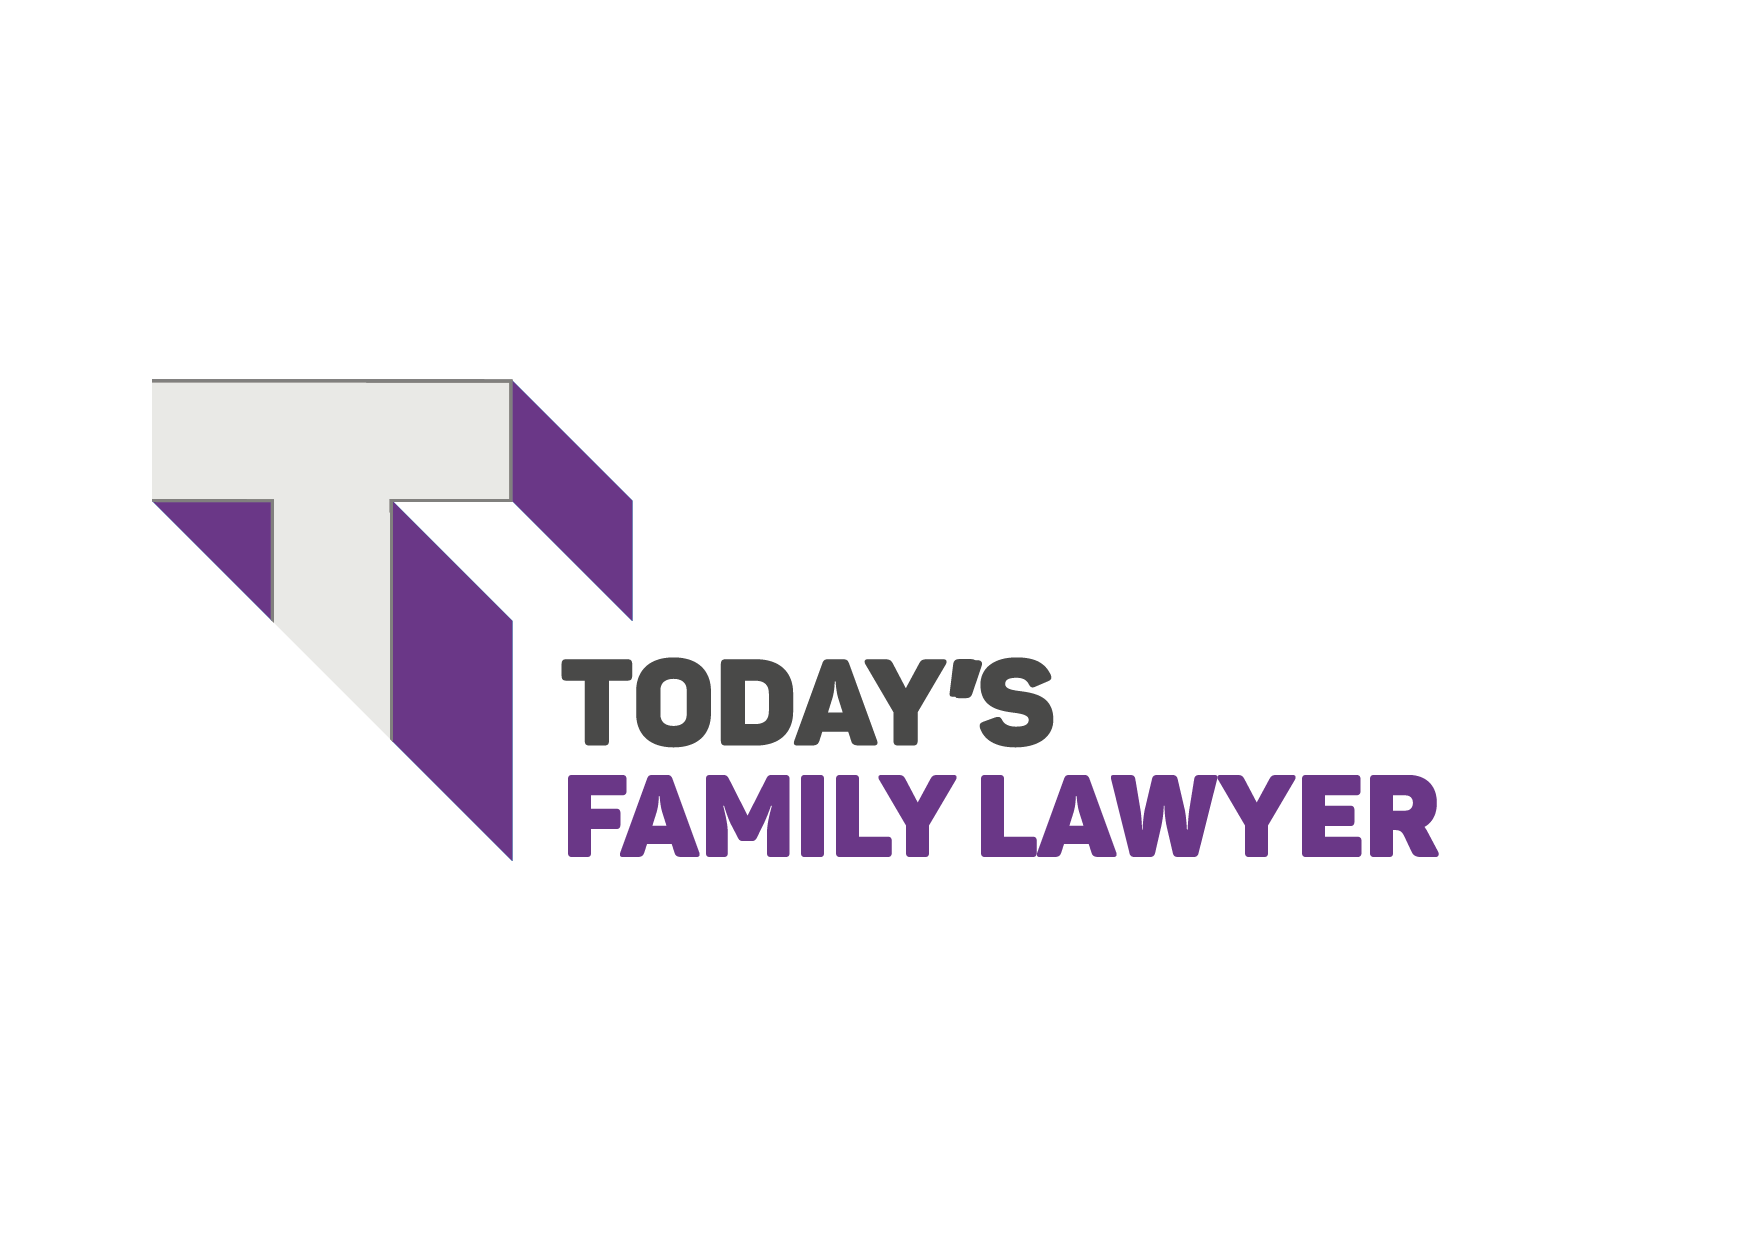 Today's Family Lawyer